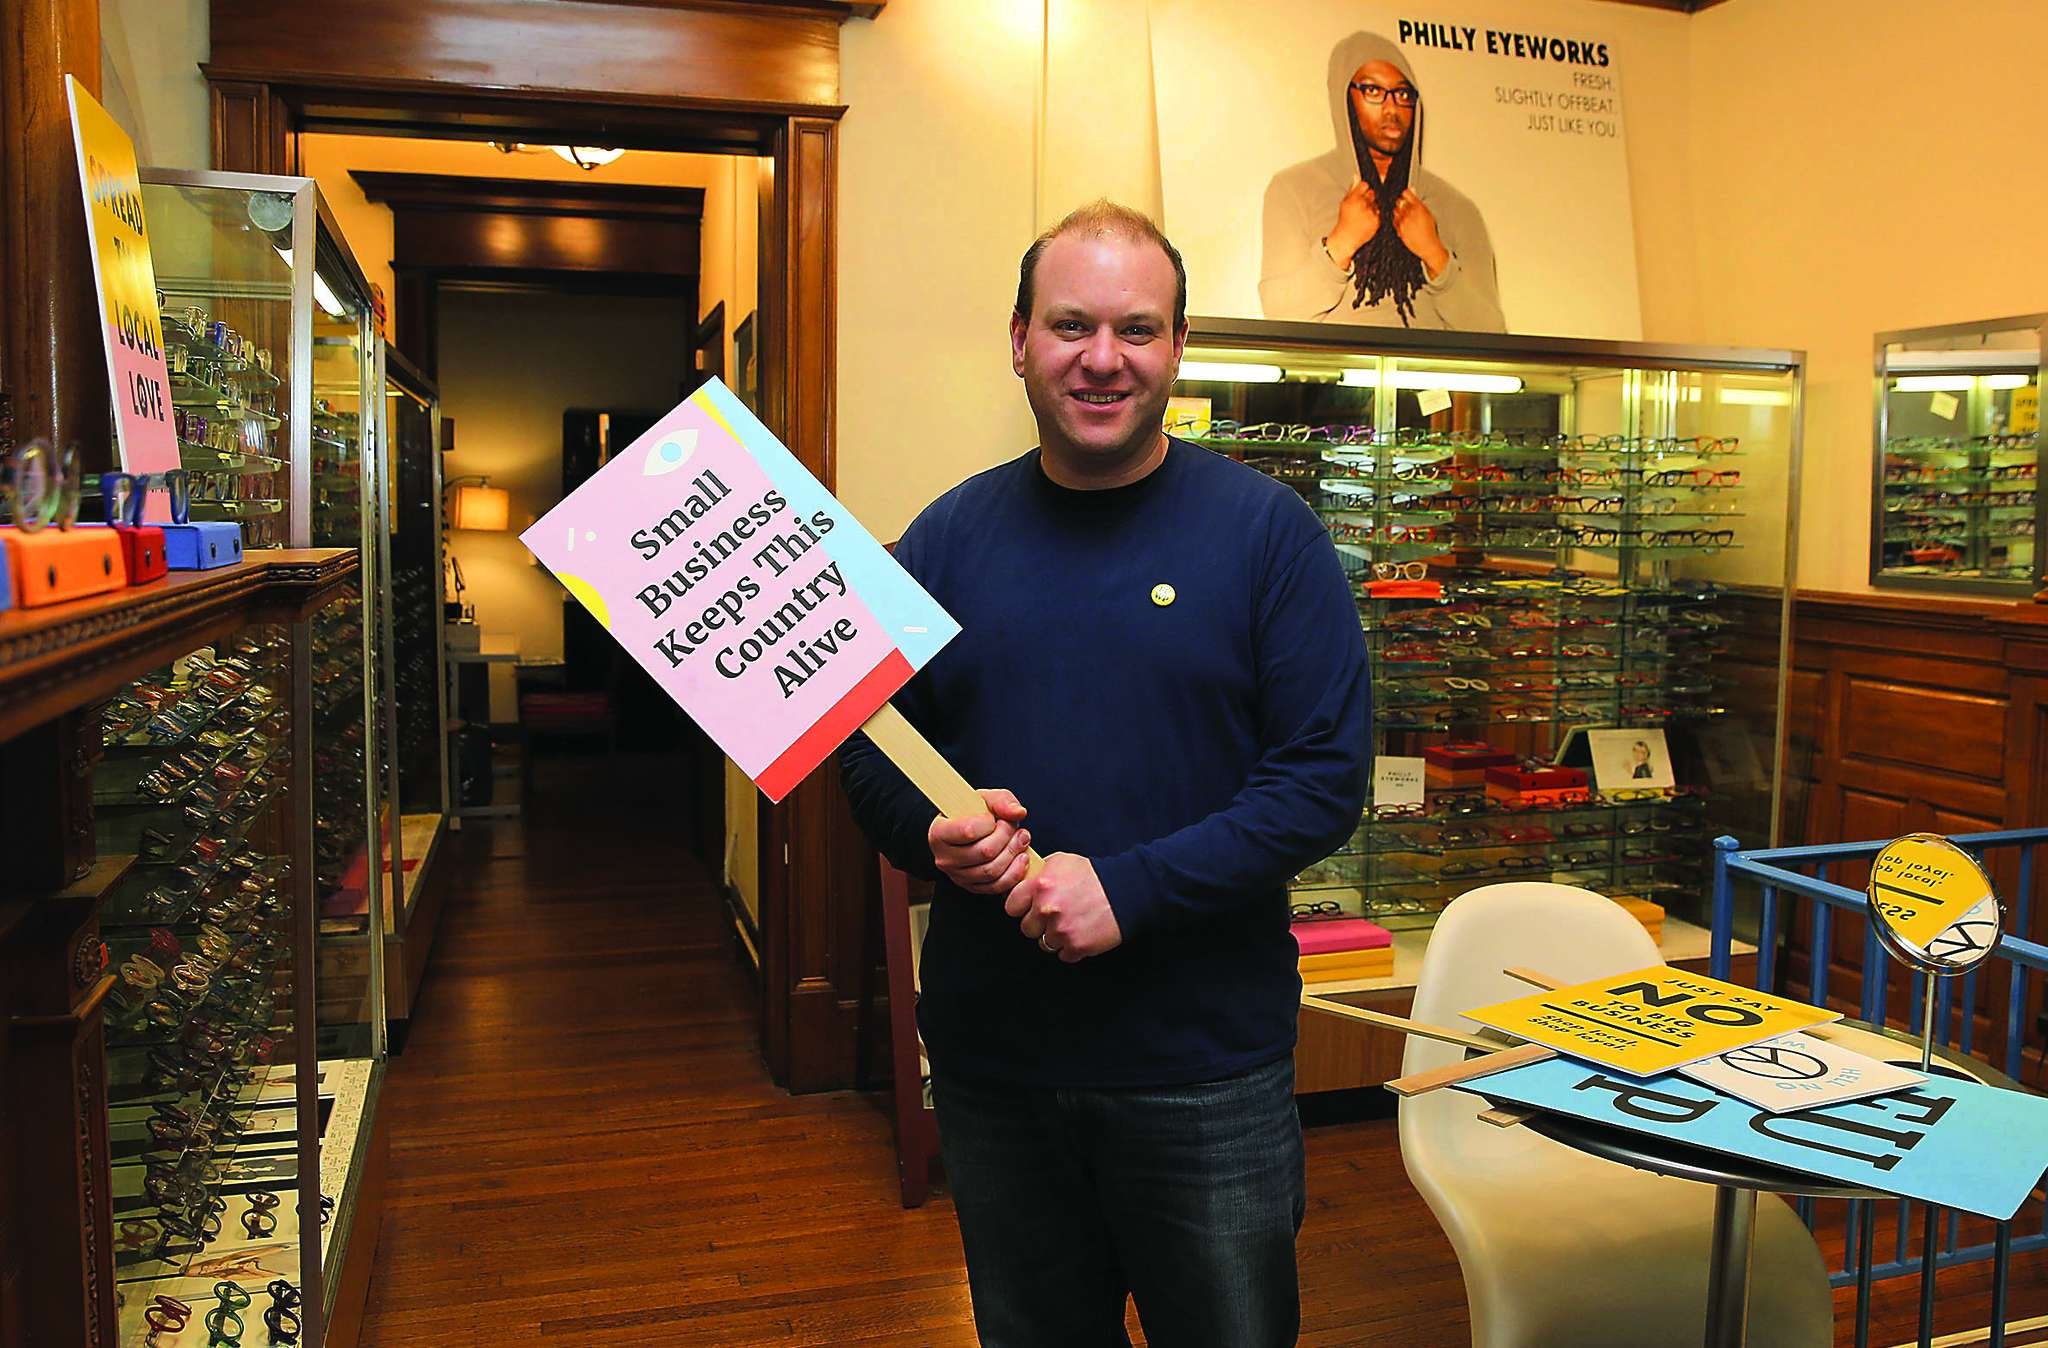 Clifton Balter in his eyewear store with a sign promoting local small businesses. He plans to greet the new Warby Parker store with his message.